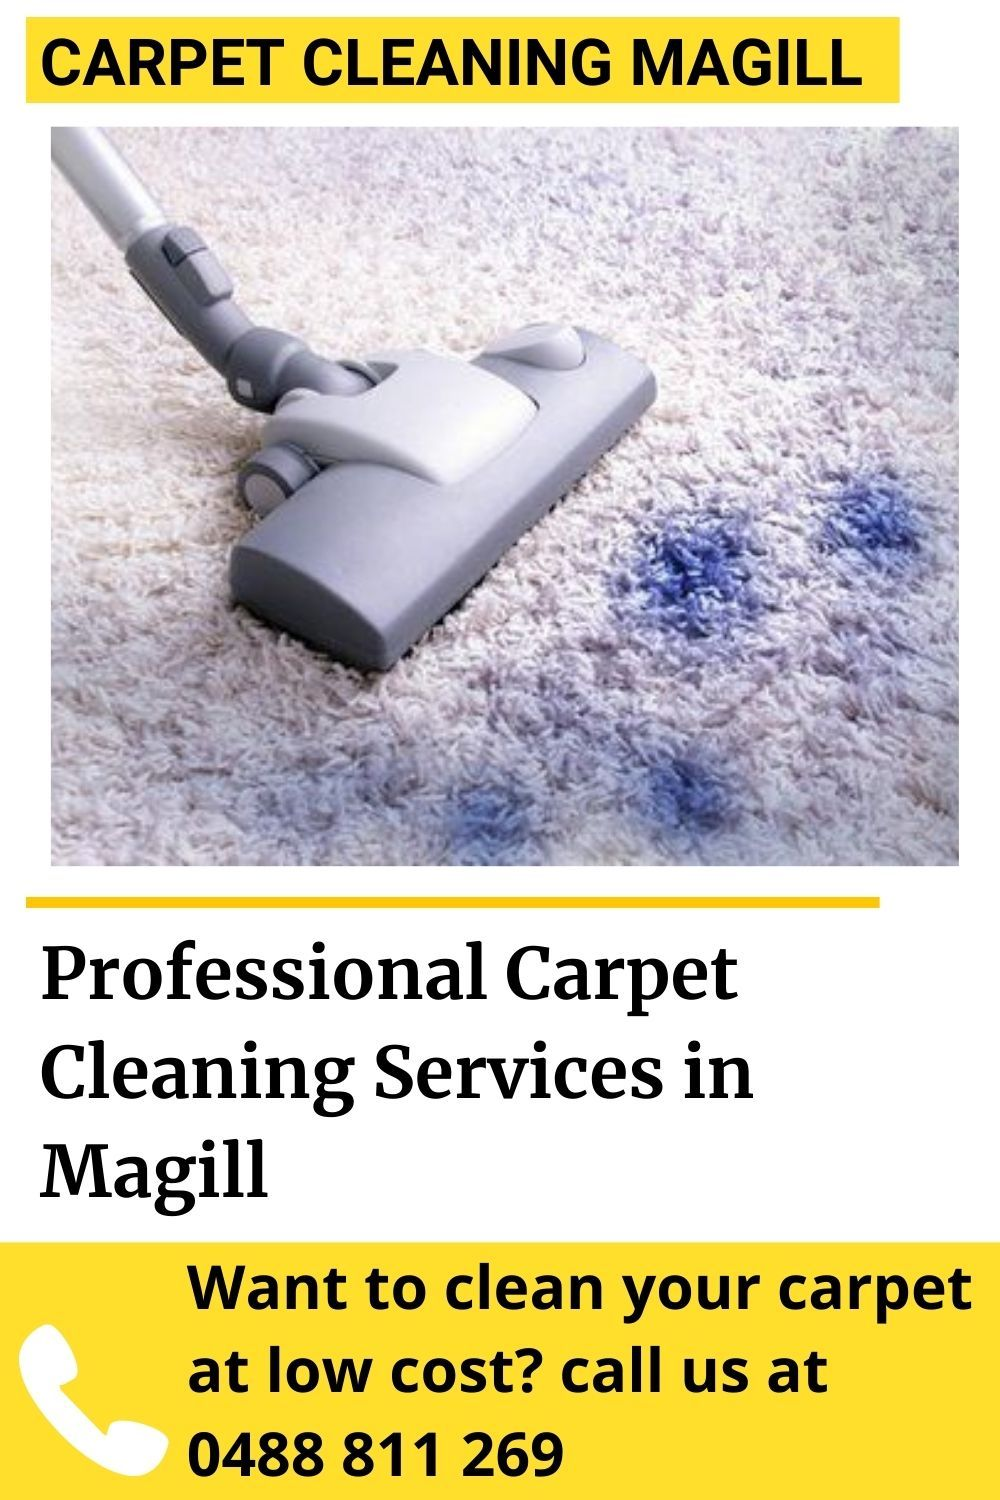 If you are worried about the carpet maintaining? Then just quickly hire are expert and get to know all types of solution related to your carpet. We always give excellent results and services to our clients and also we provide our services at a lower cost. So to get high-end results just contact our professional today at 0488 811 269 #carpetcleaningservice #carpetcleaner #carpetcleaning #cleaningservices #Magill